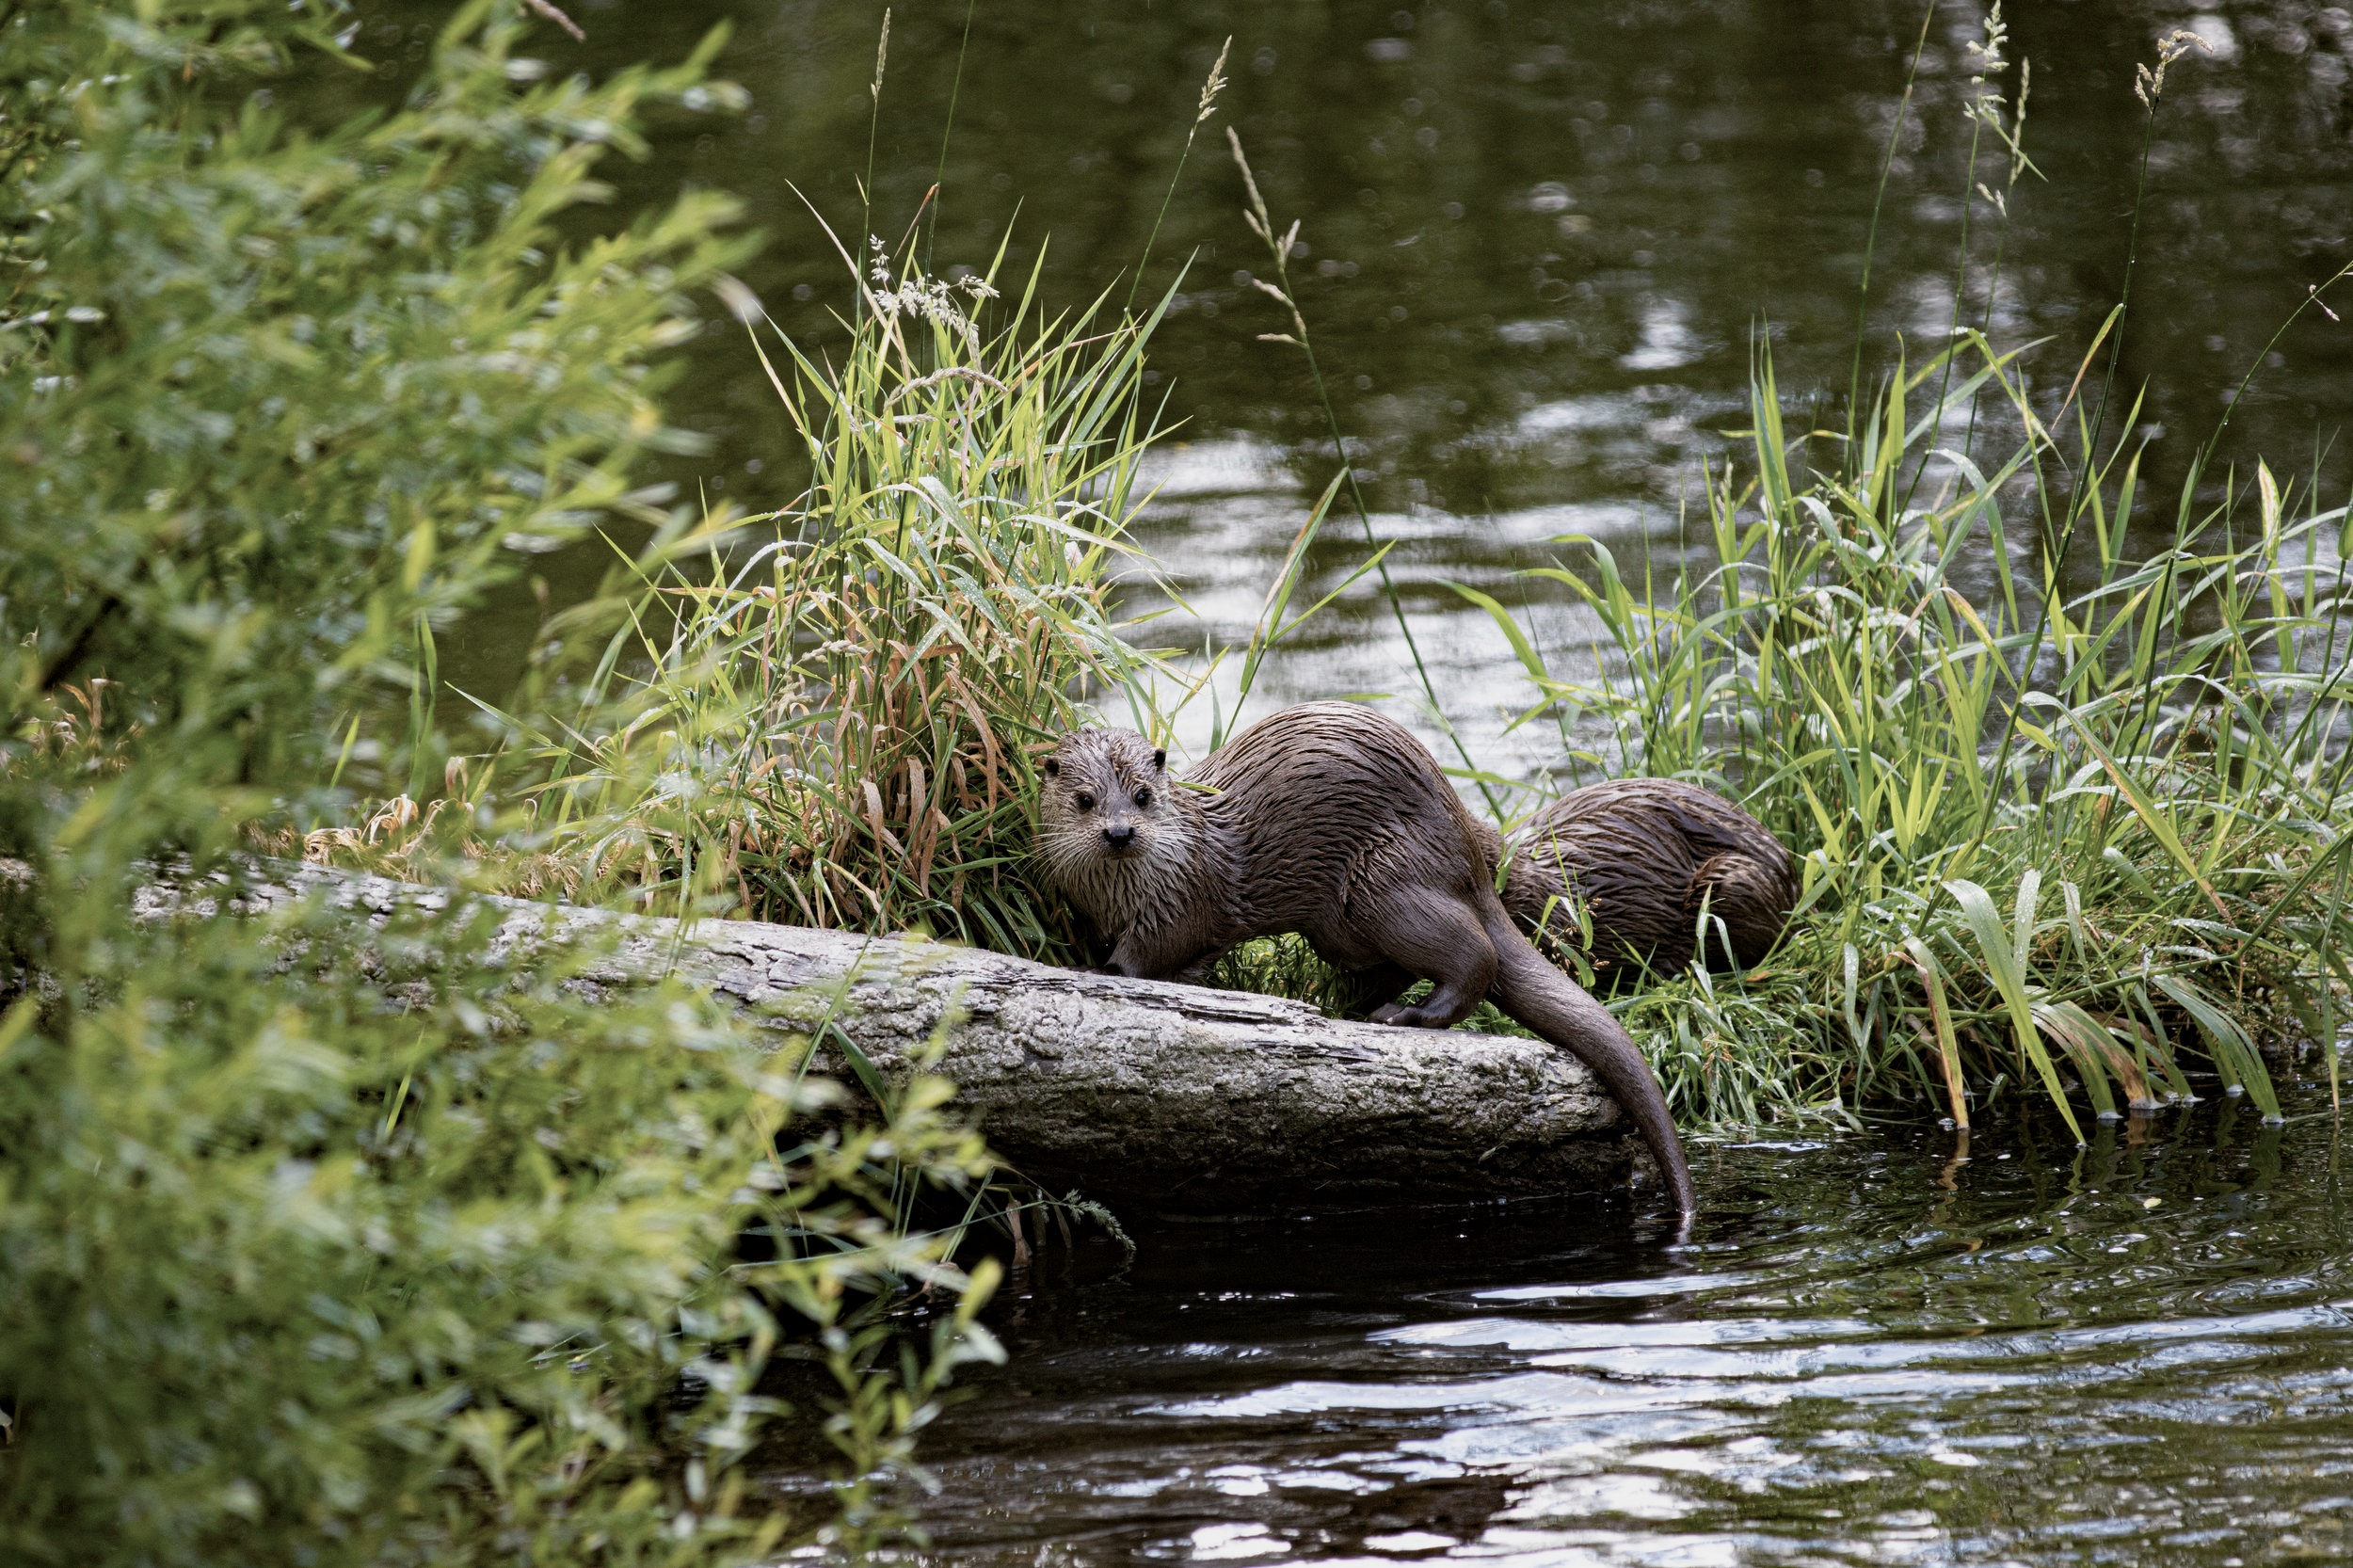 The river otter is an example of a conservation success story. With the assistance of licensed trappers and traps, the otter was reintroduced by wildlife managers to once extirpated areas of the animal's traditional home range. (Photo | Andreas Schantl)